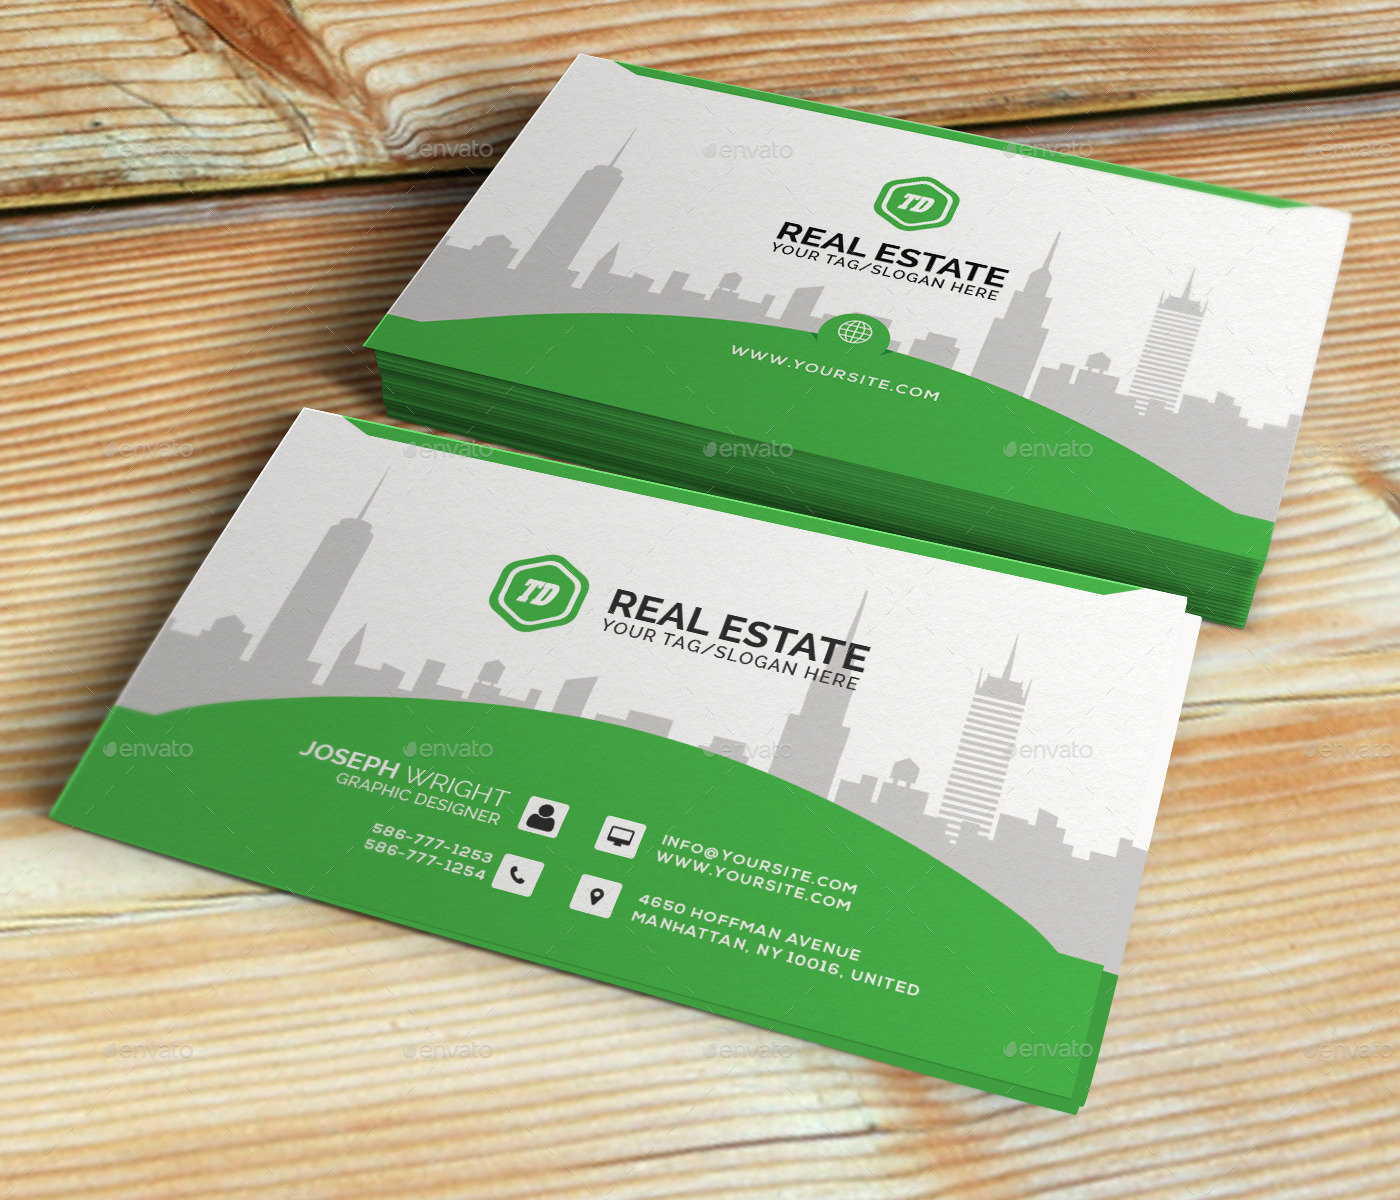 Real estate business card template by themedesk graphicriver template corporate business cards previewpreview 00g preview preview 01g previewpreview 02g wajeb Images